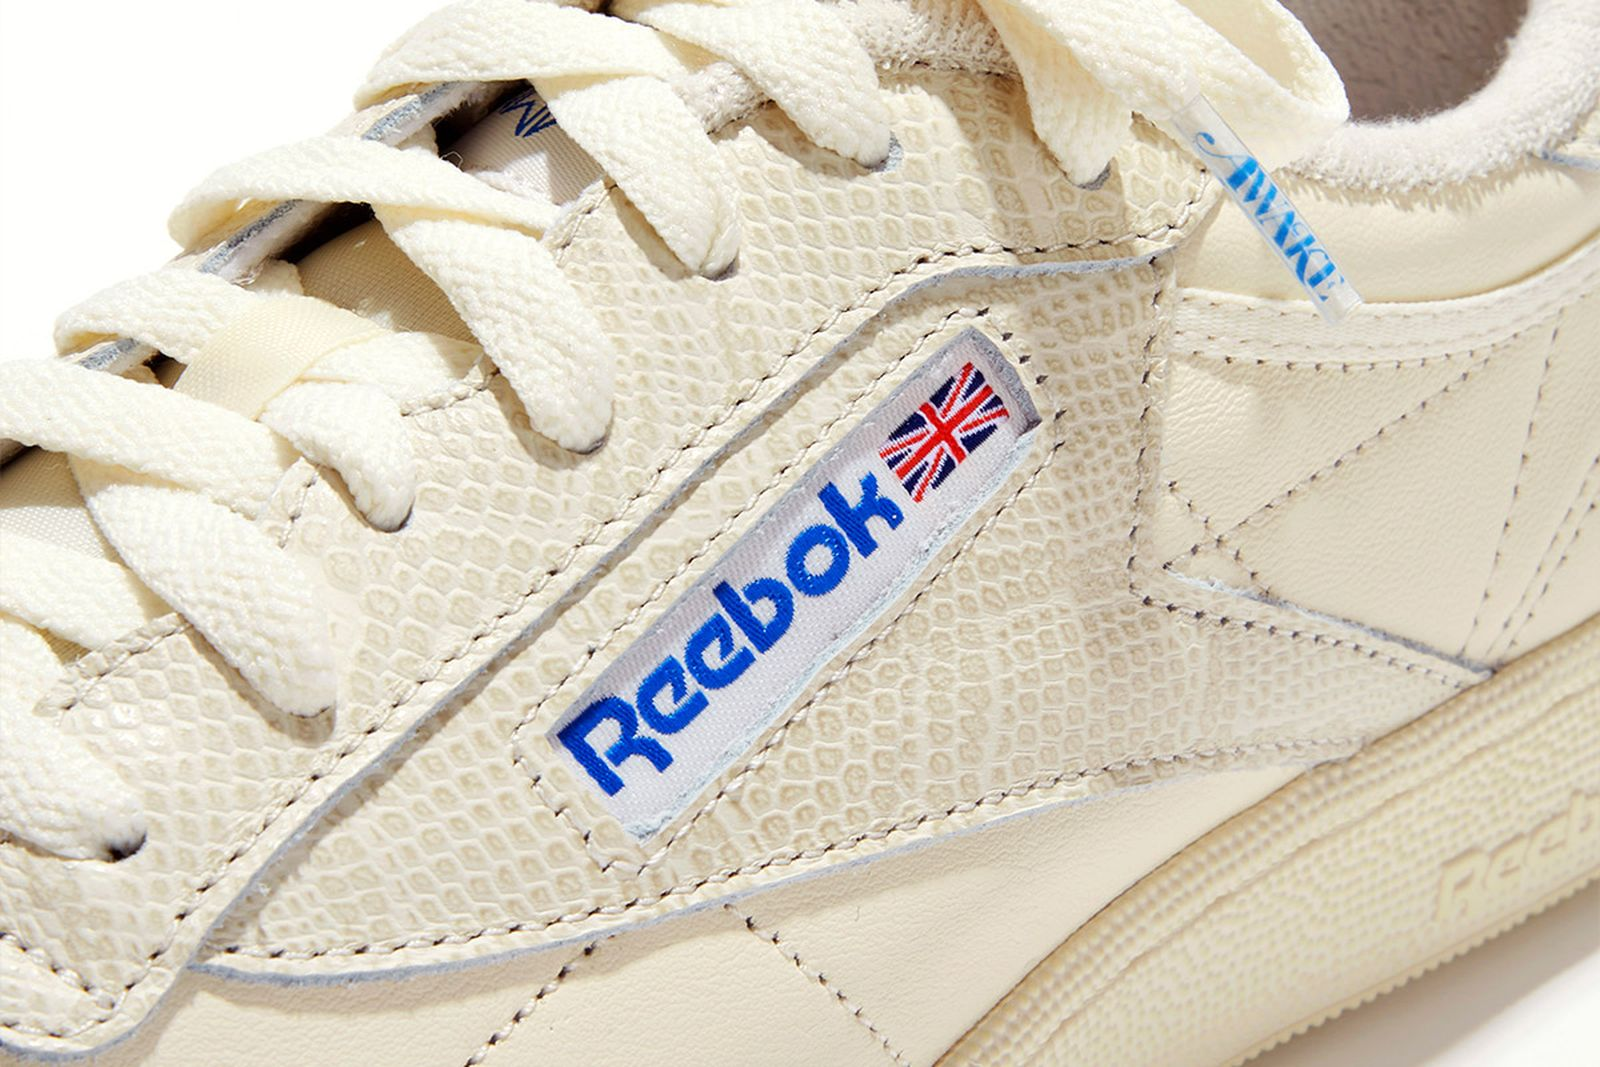 awake-ny-reebok-club-c-classic-leather-release-date-price-06